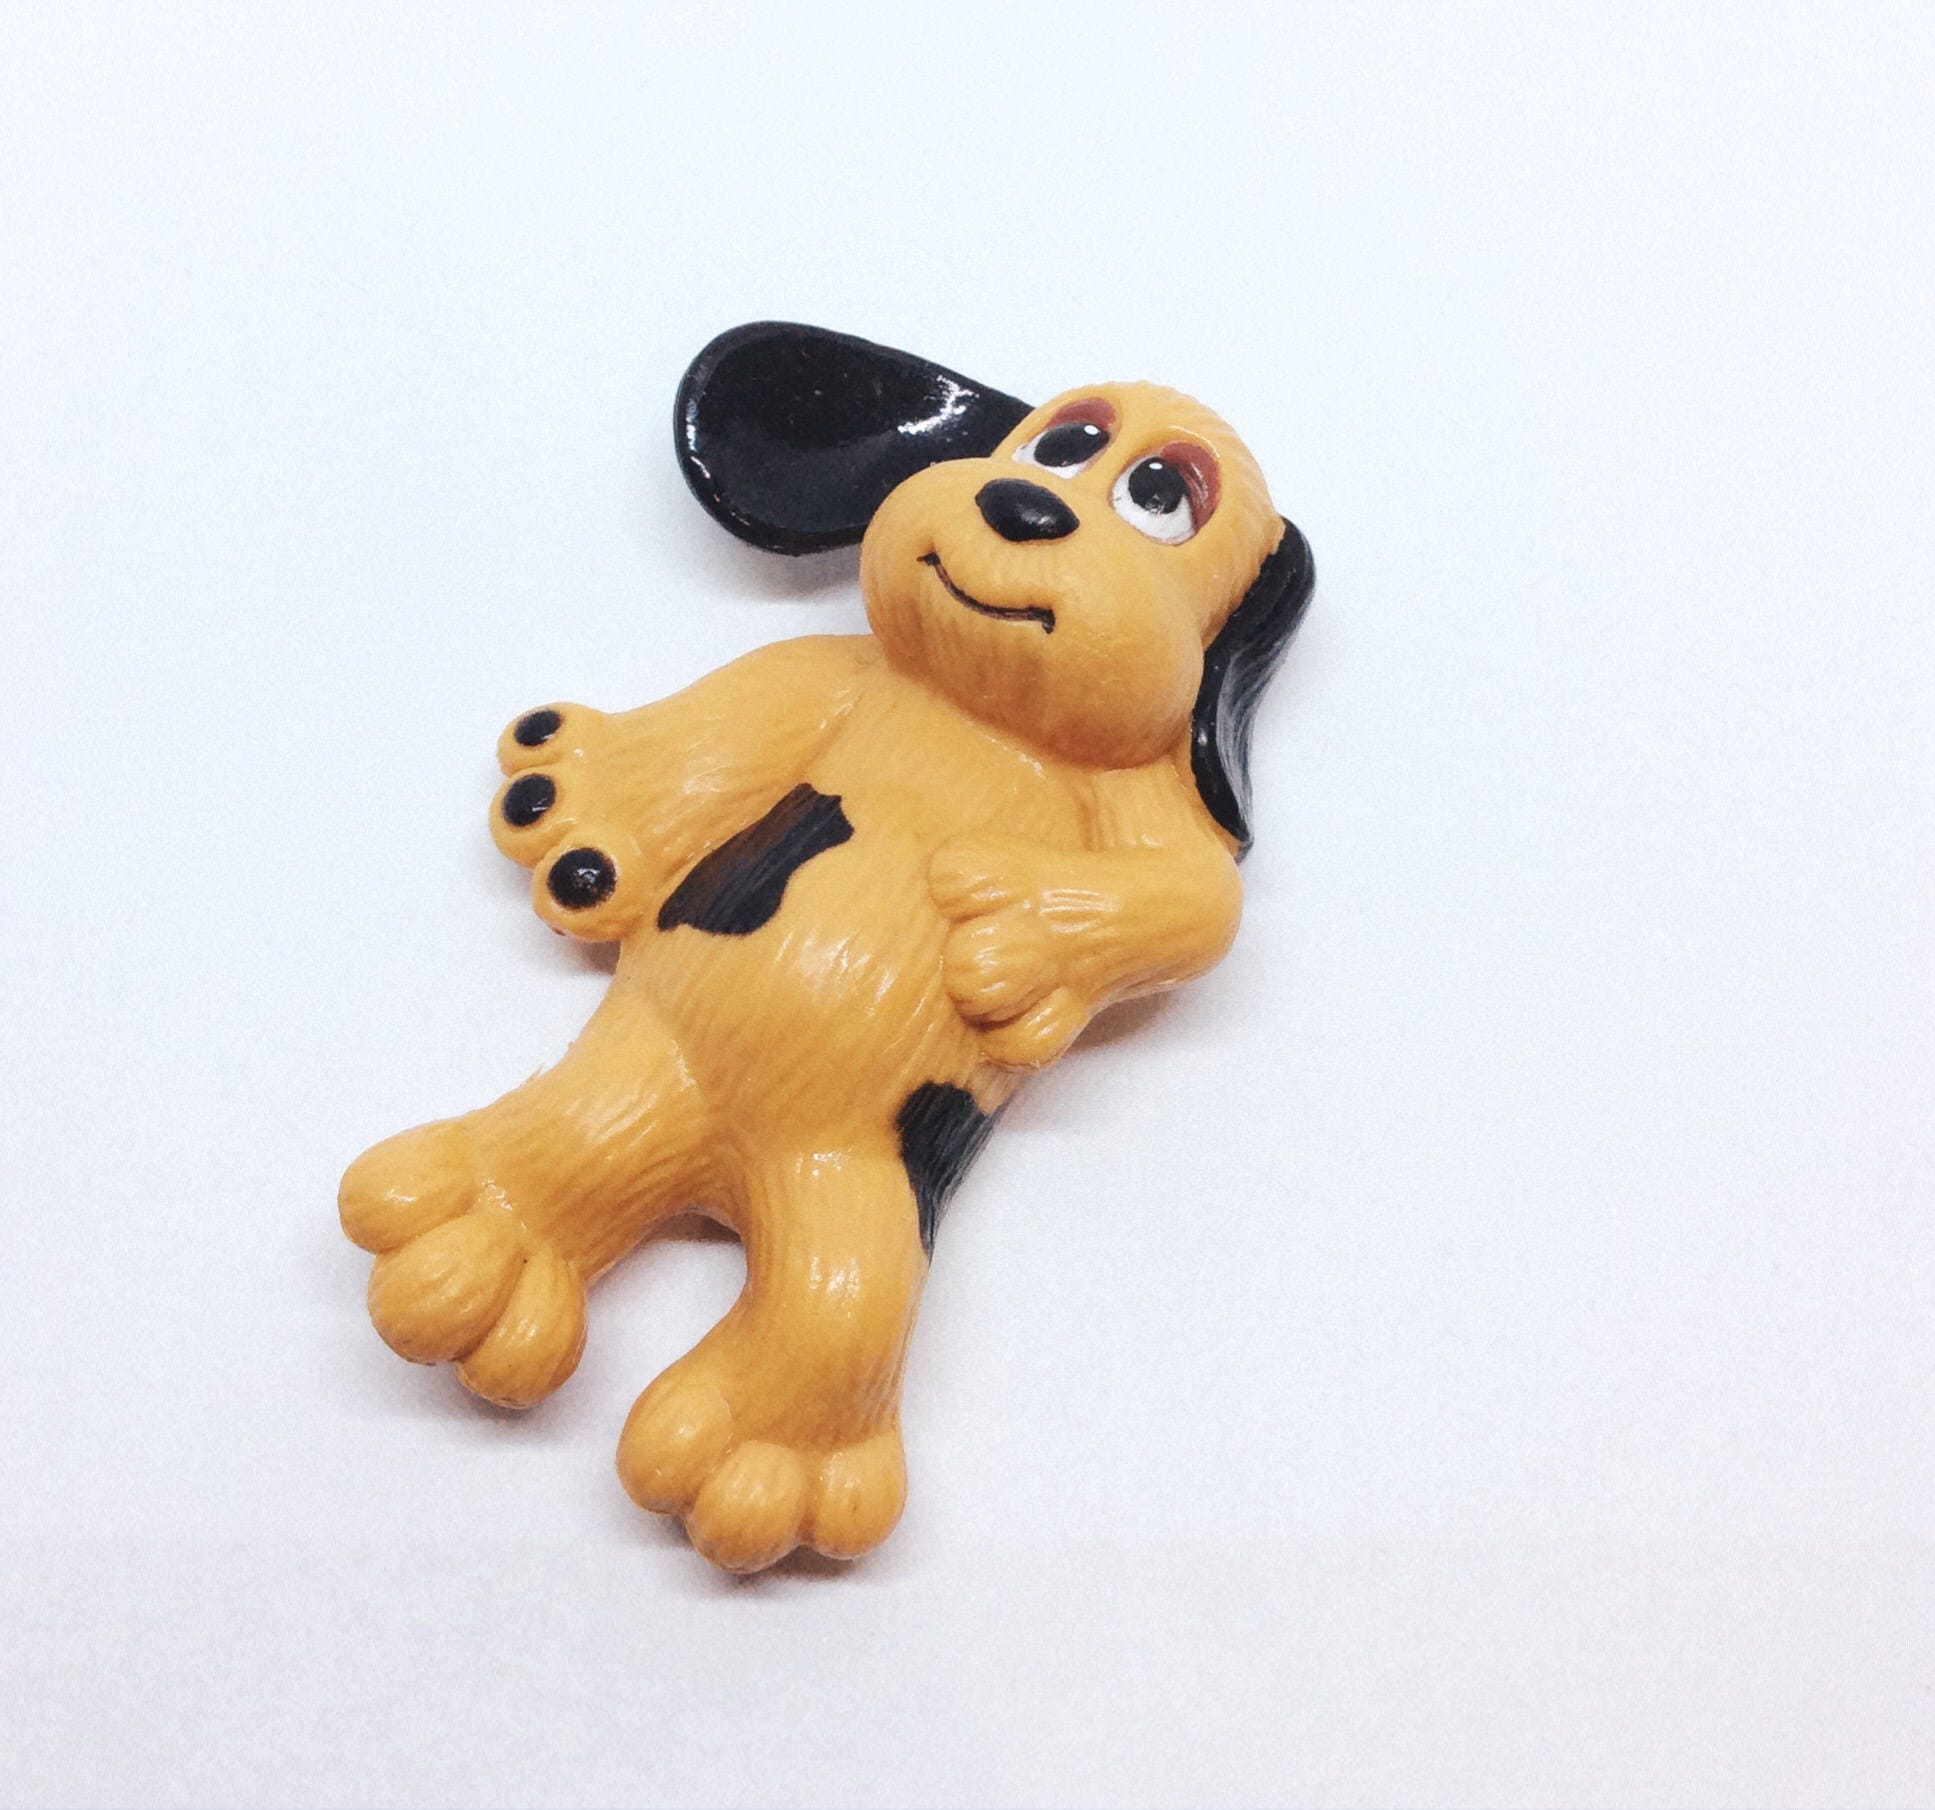 Vintage Pound Puppy PVC Figure from 1984 Tonka PP1 LGT 1980s